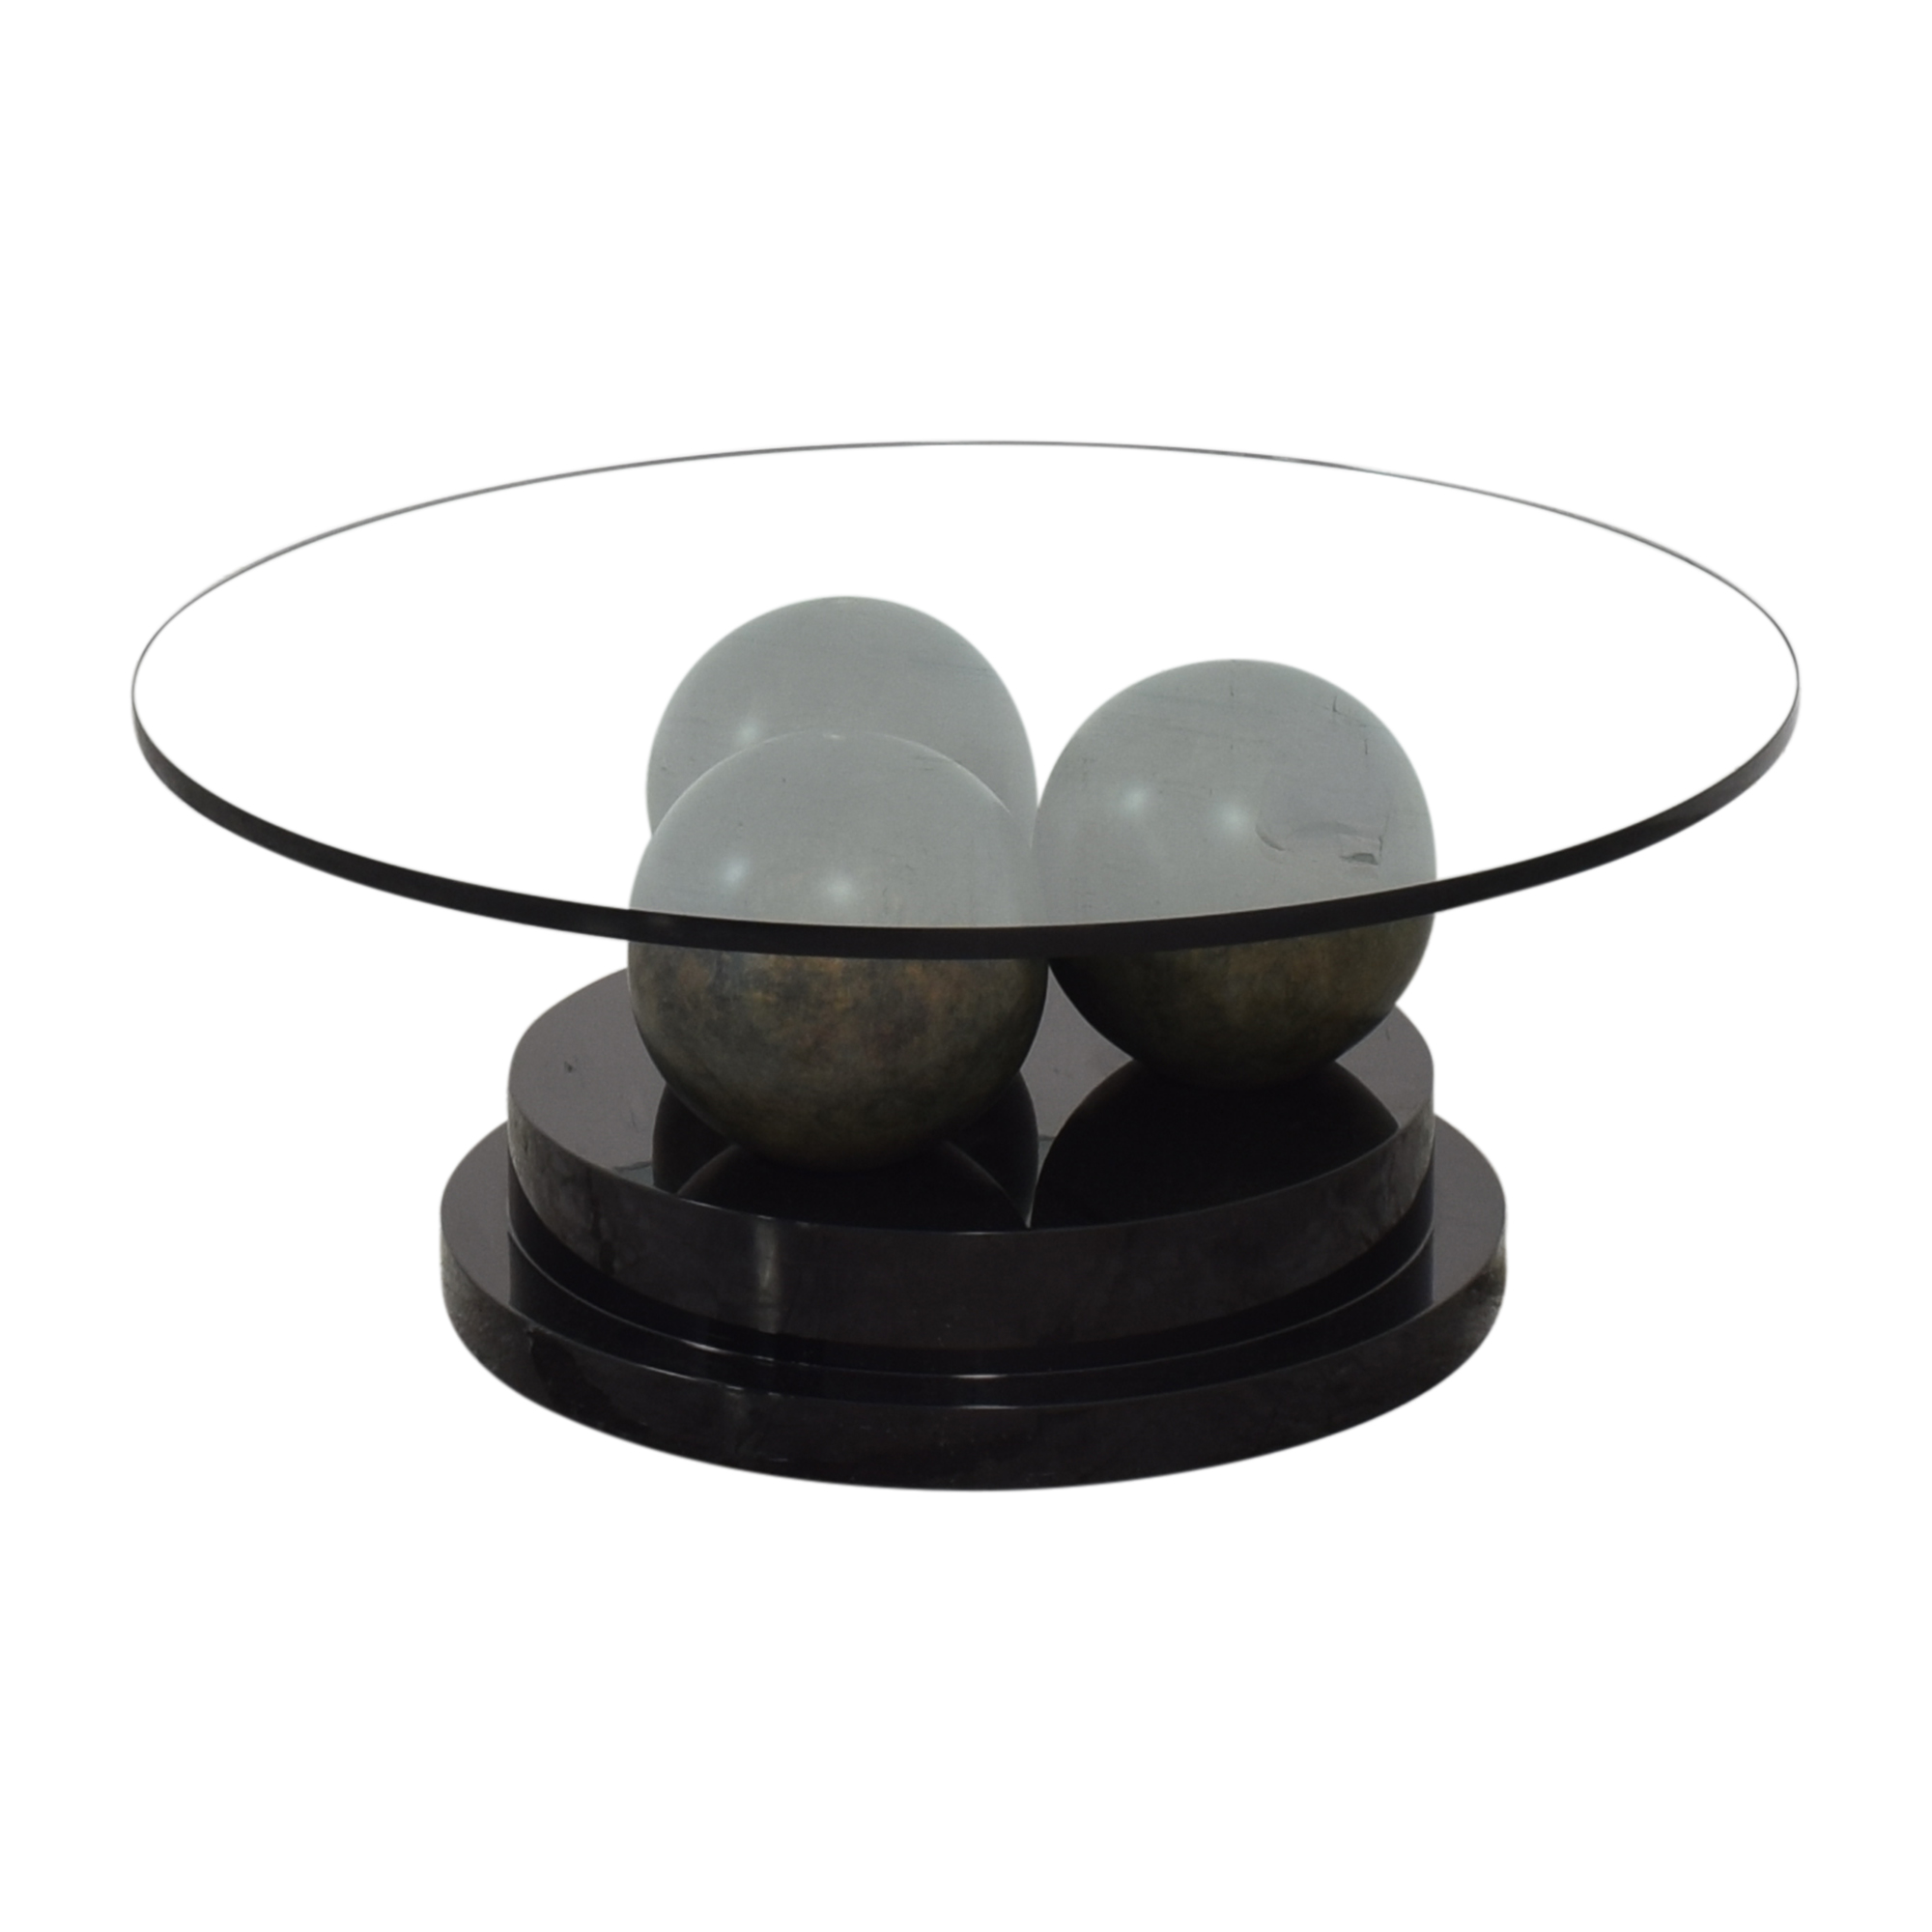 Directional Furniture Directional Furniture Glass Coffee Table discount